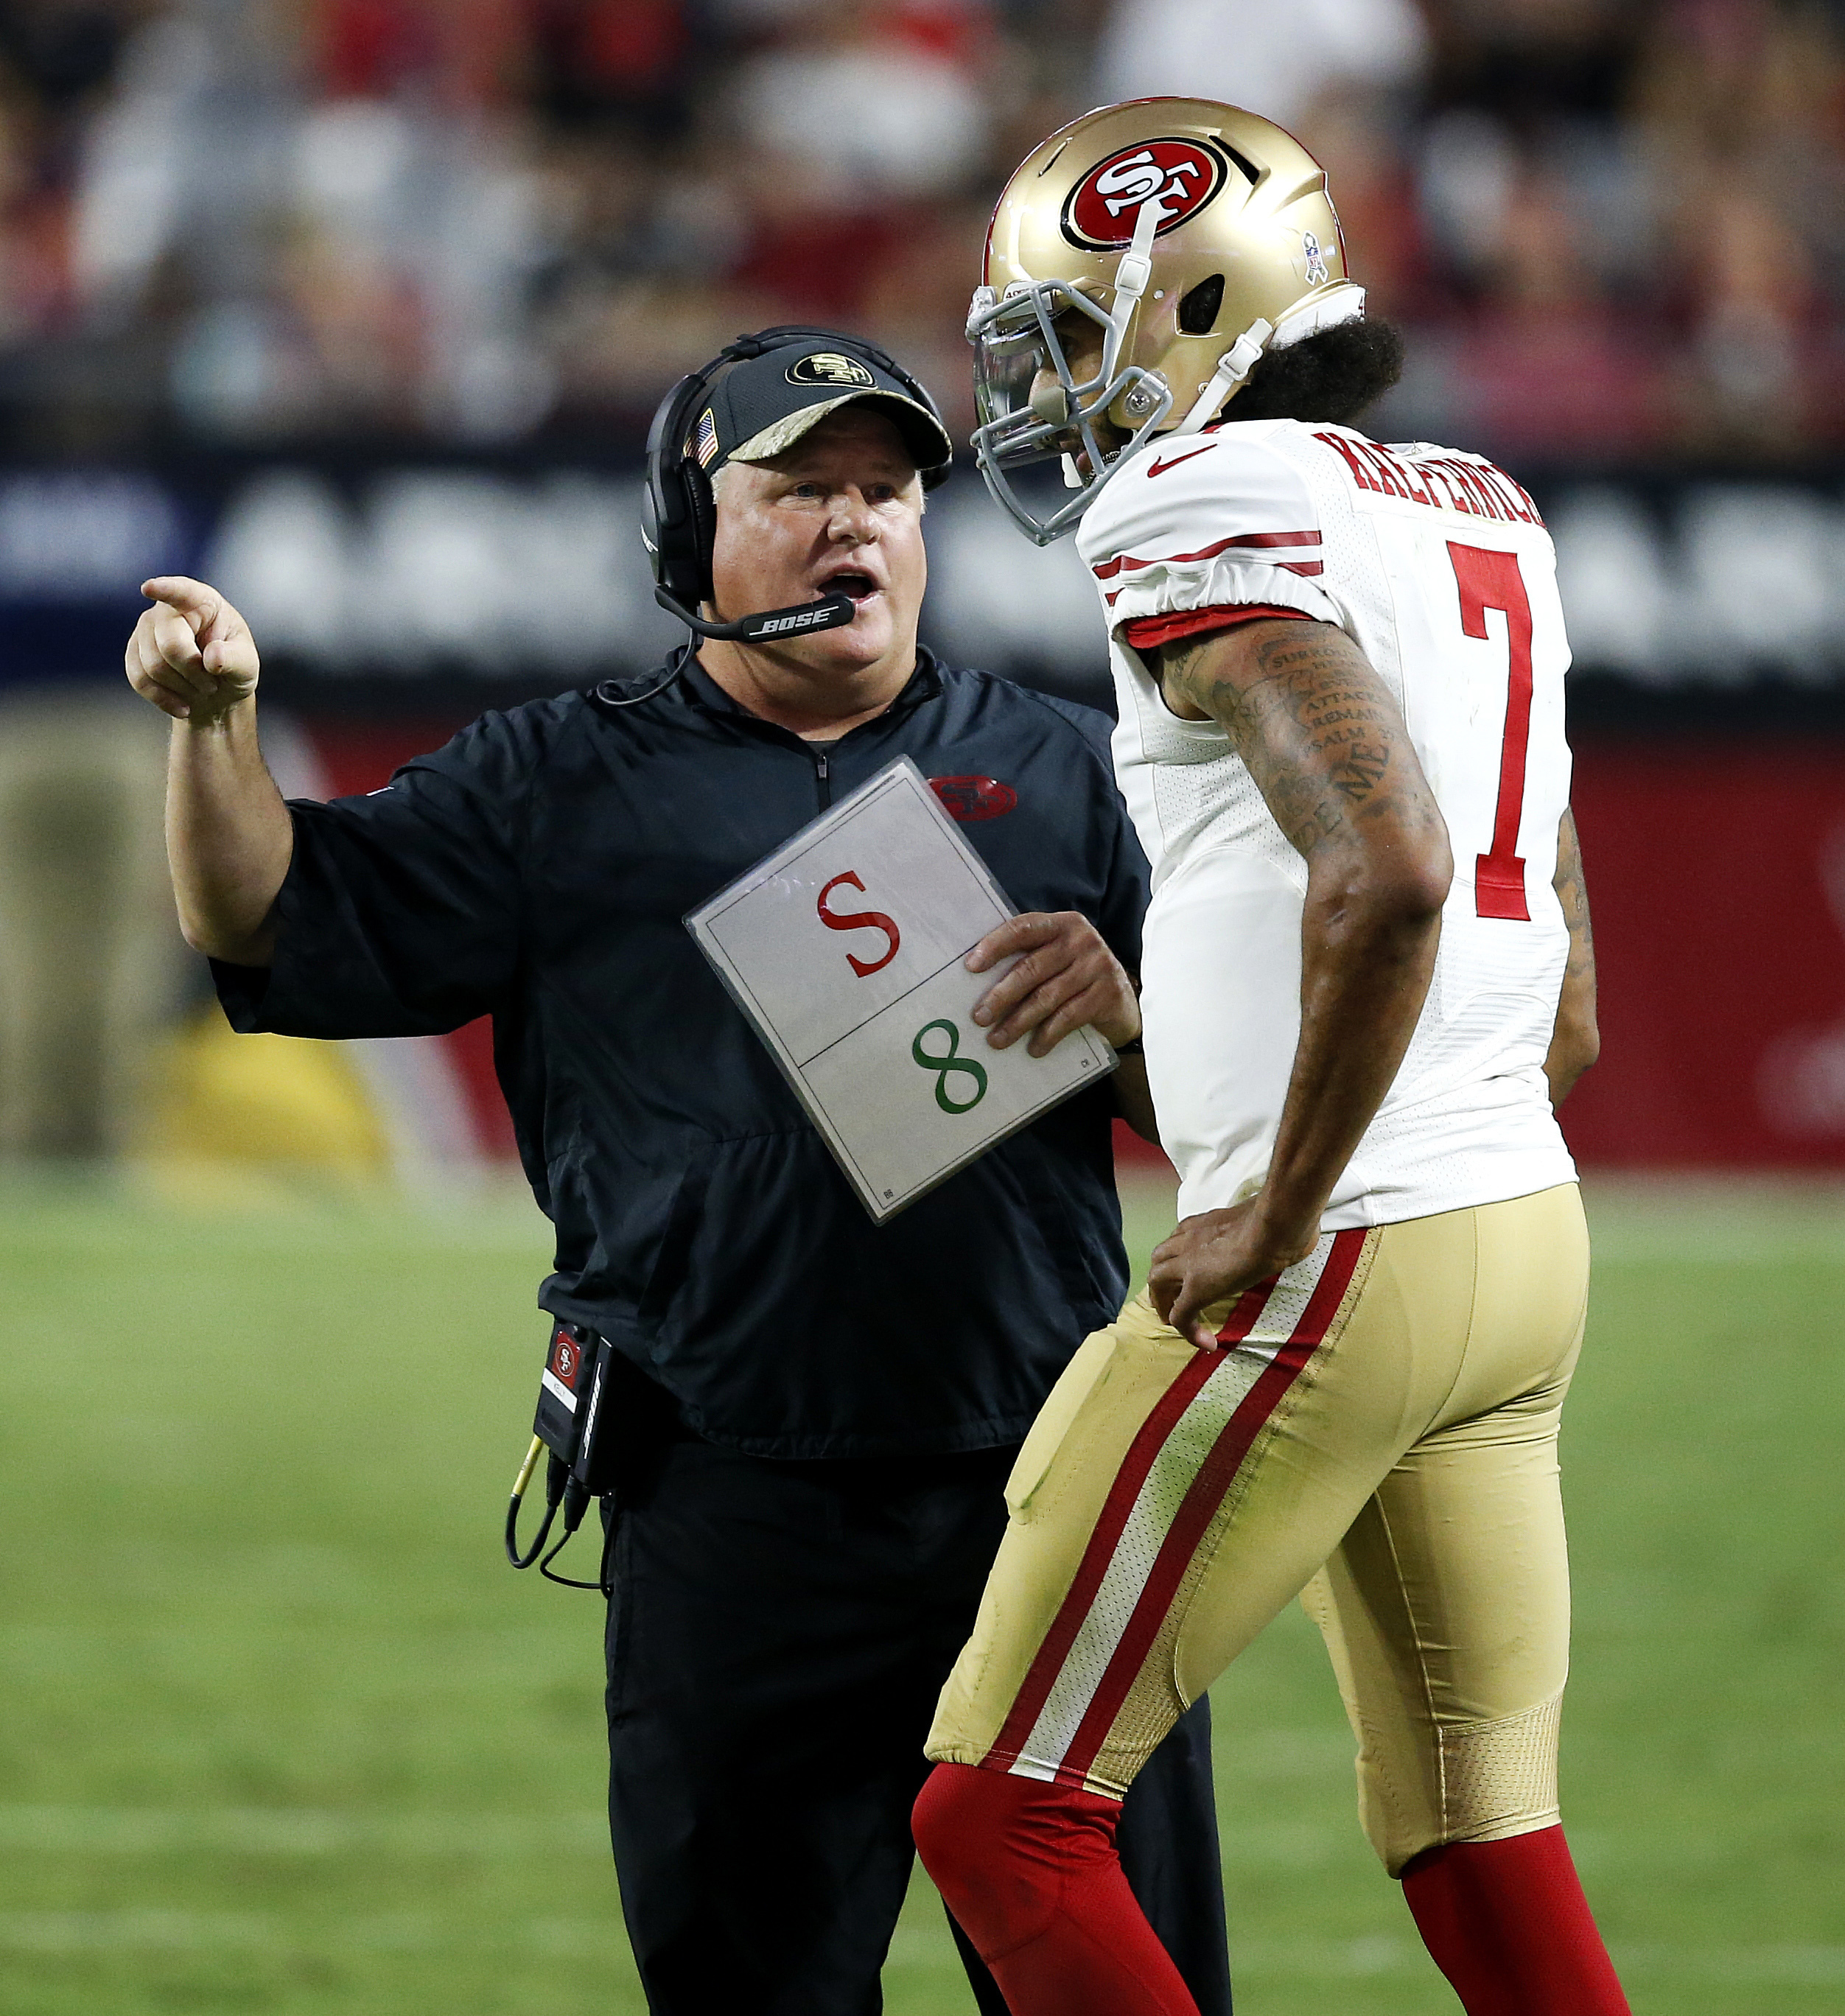 FILE - In this Sunday, Nov. 13, 2016, file photo, San Francisco 49ers head coach Chip Kelly talks with quarterback Colin Kaepernick (7) during the second half of an NFL football game in Glendale, Ariz. San Francisco will try to snap a franchise-record 10-